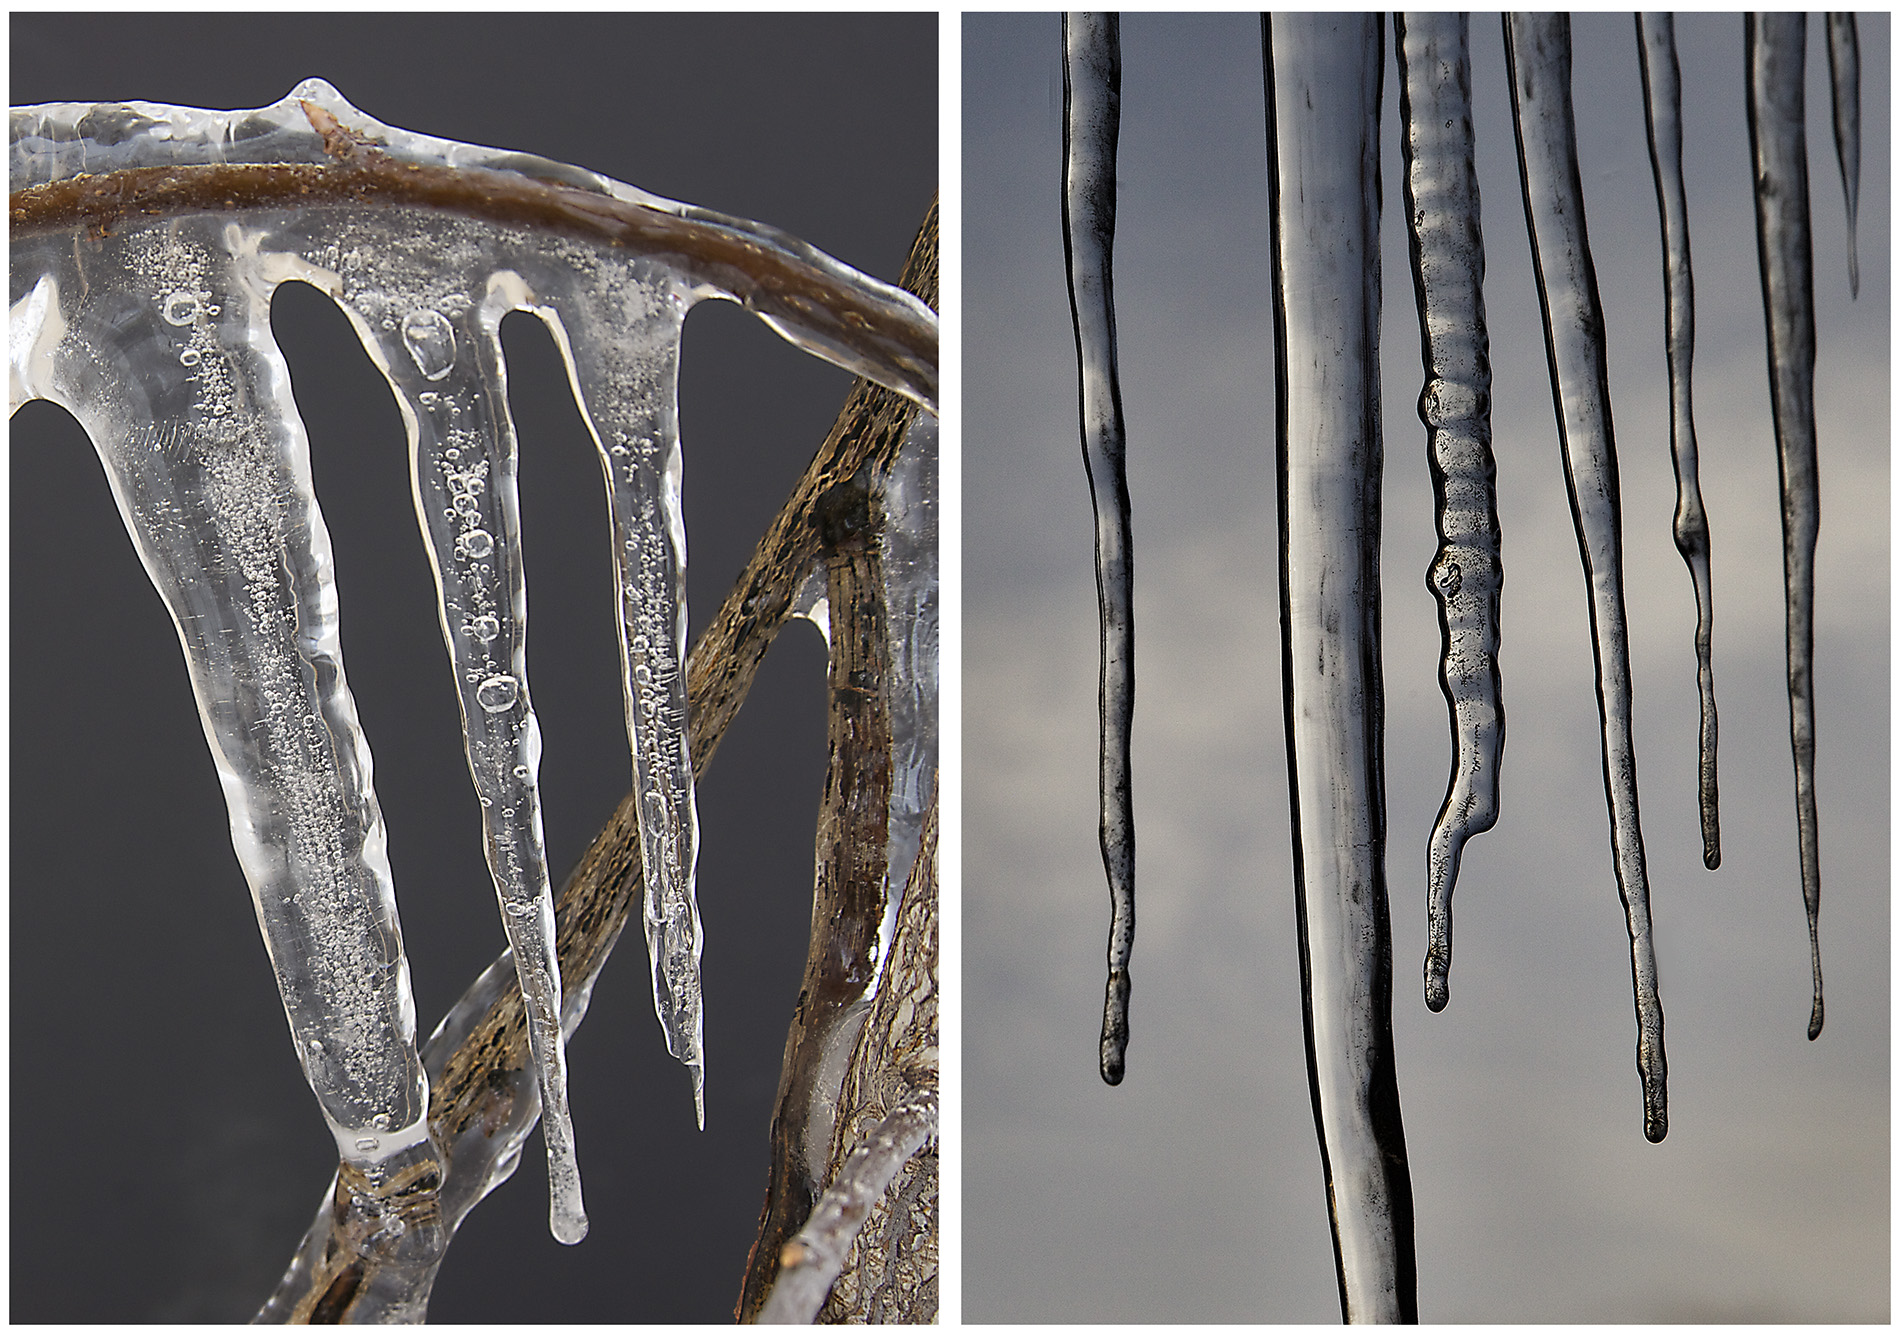 Air Bubble Formation in Icicles - EPOD - a service of USRA